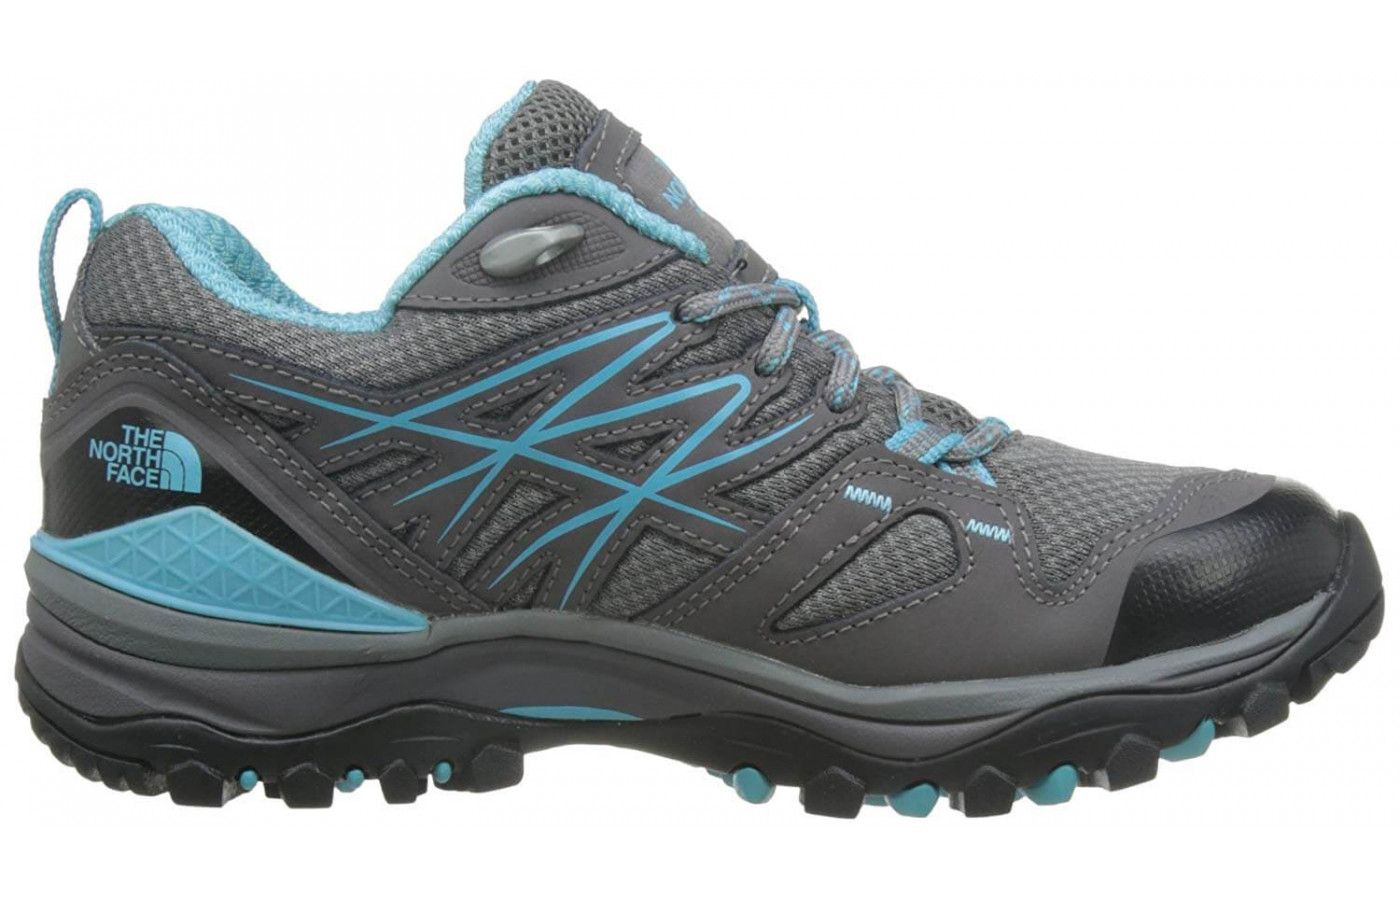 The Hedgehog Fastpack GTX features a TPU Cradle heel stabilizer for extra support